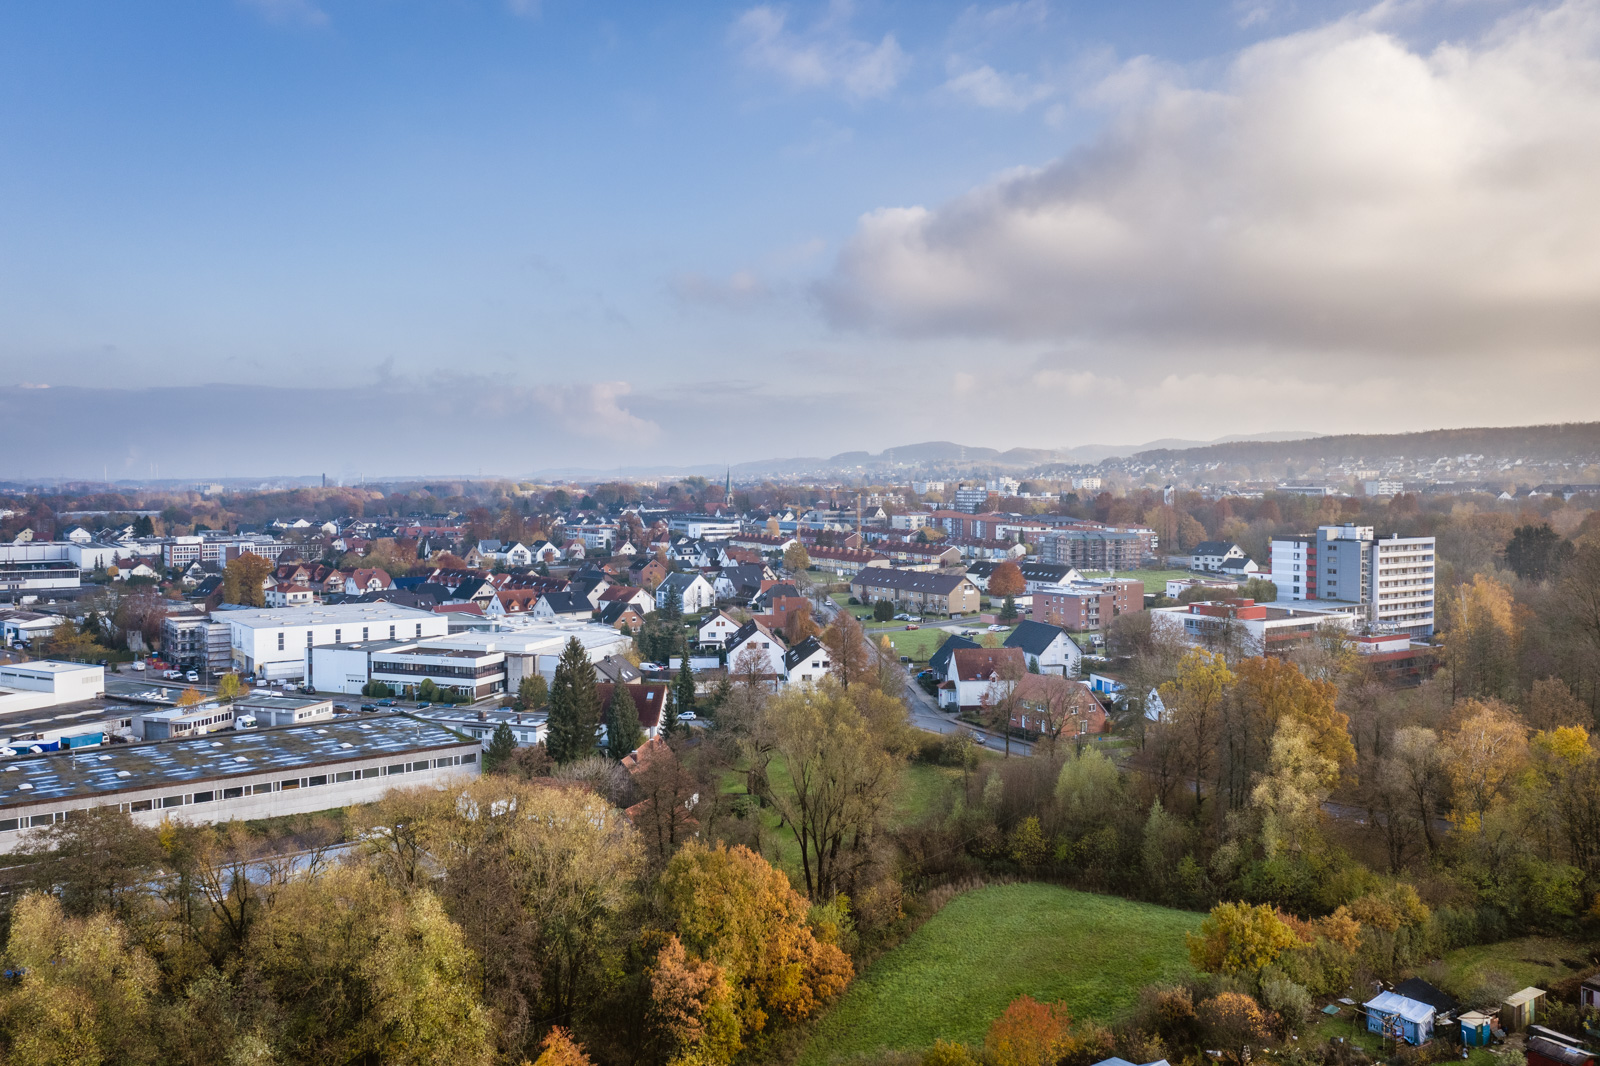 Aerial photograph of Bielefeld-Stieghorst in November 2019.